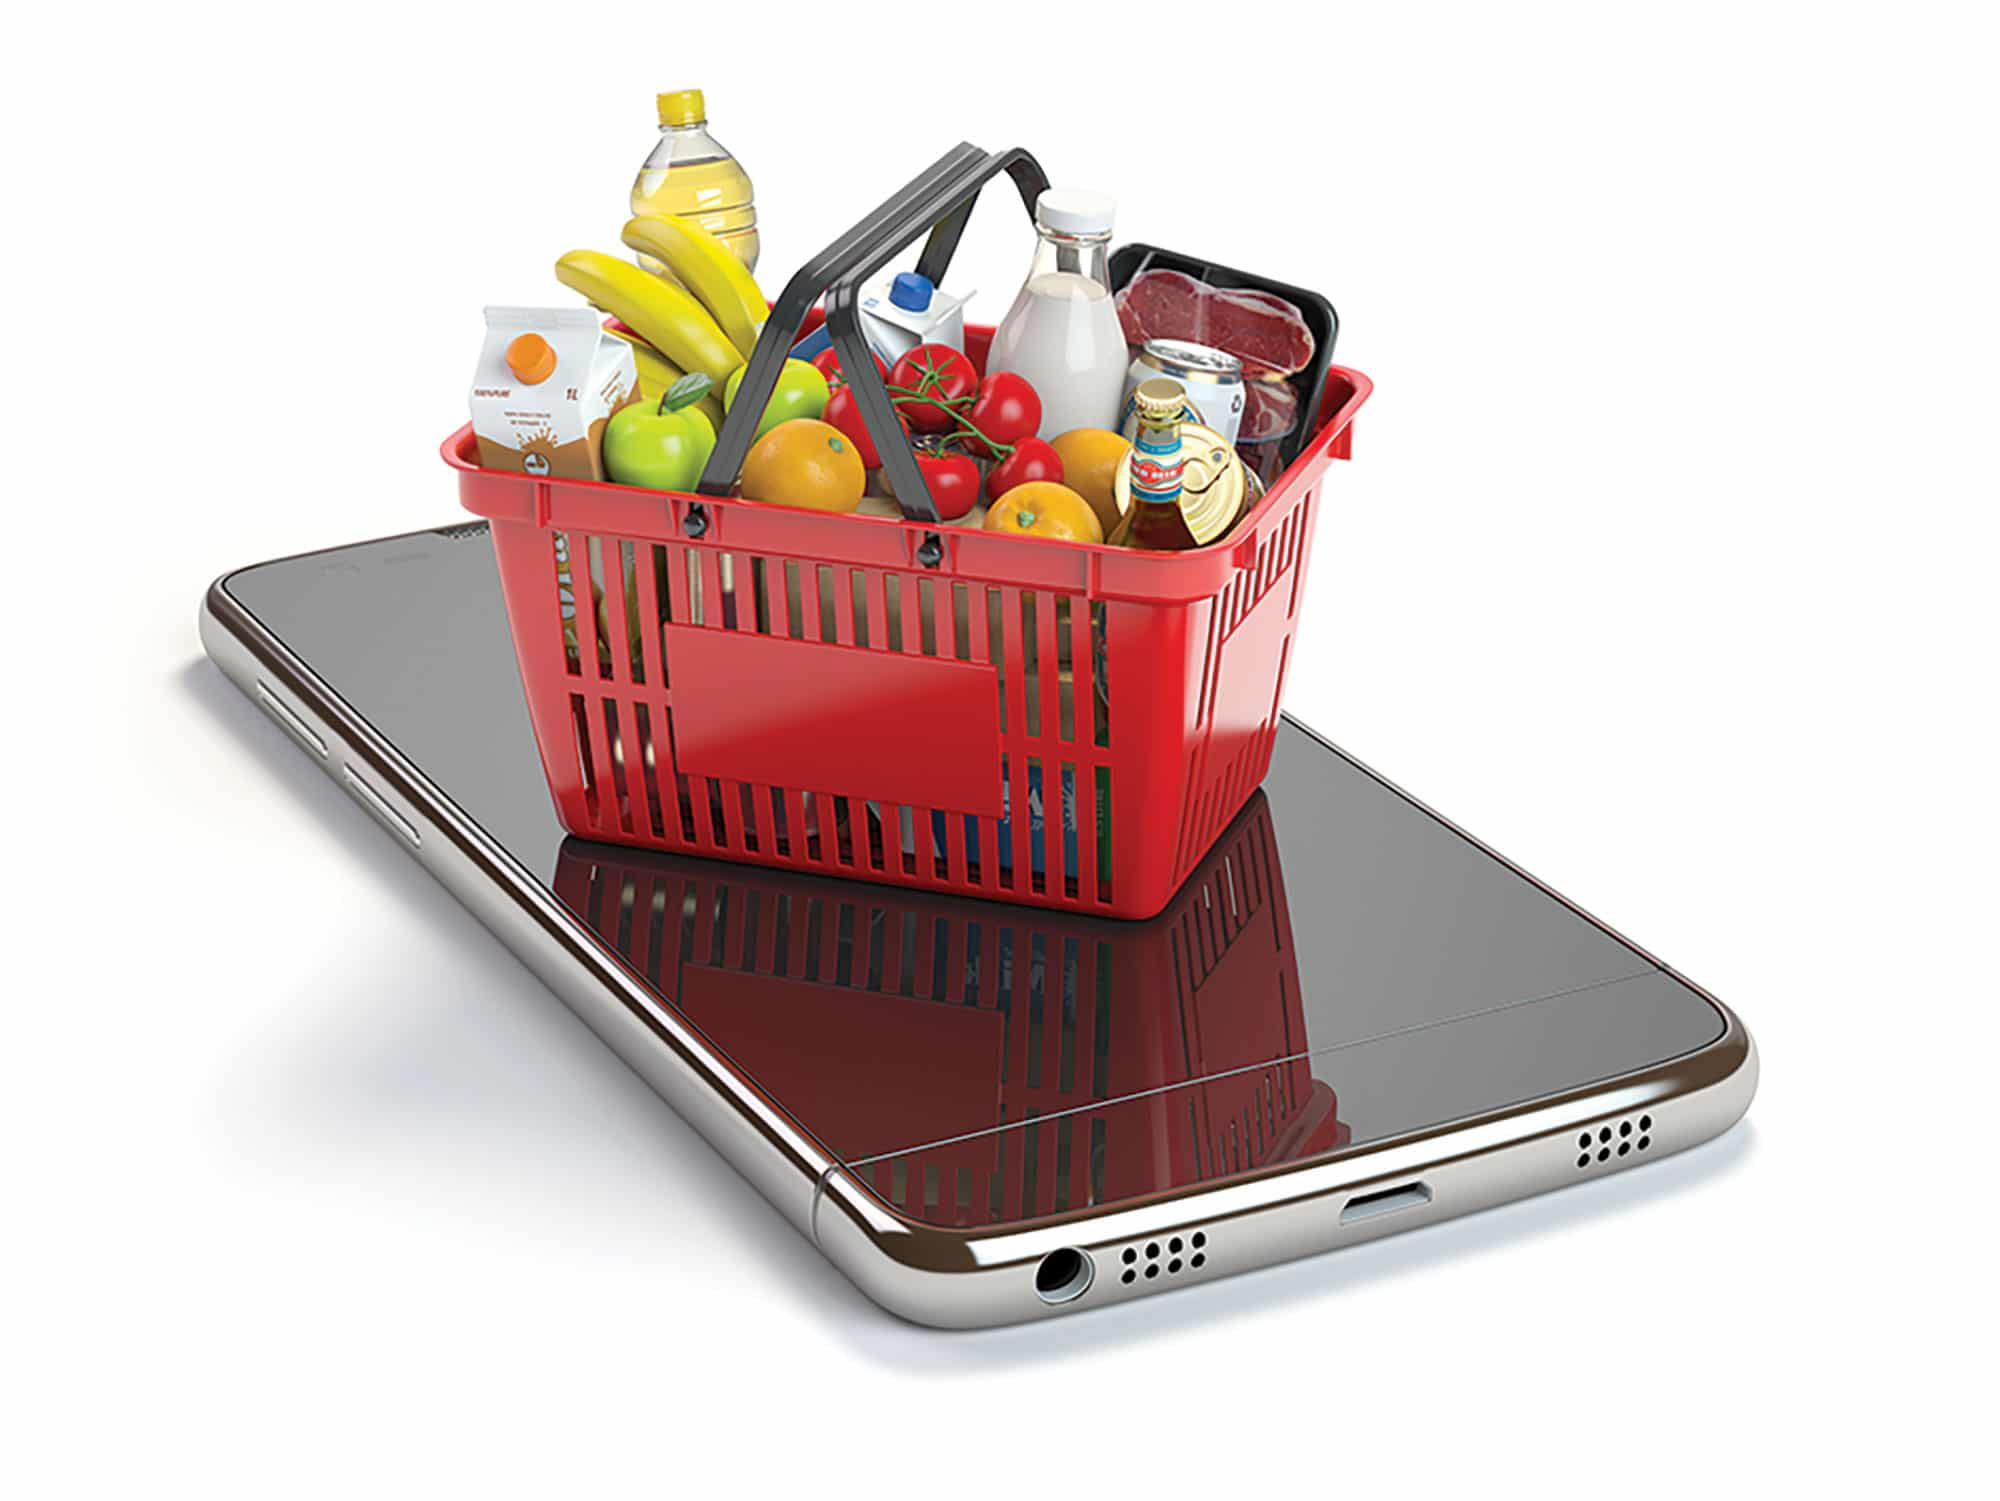 Grocery Store Design Impacted by Pandemic-Driven Shopping Behaviors